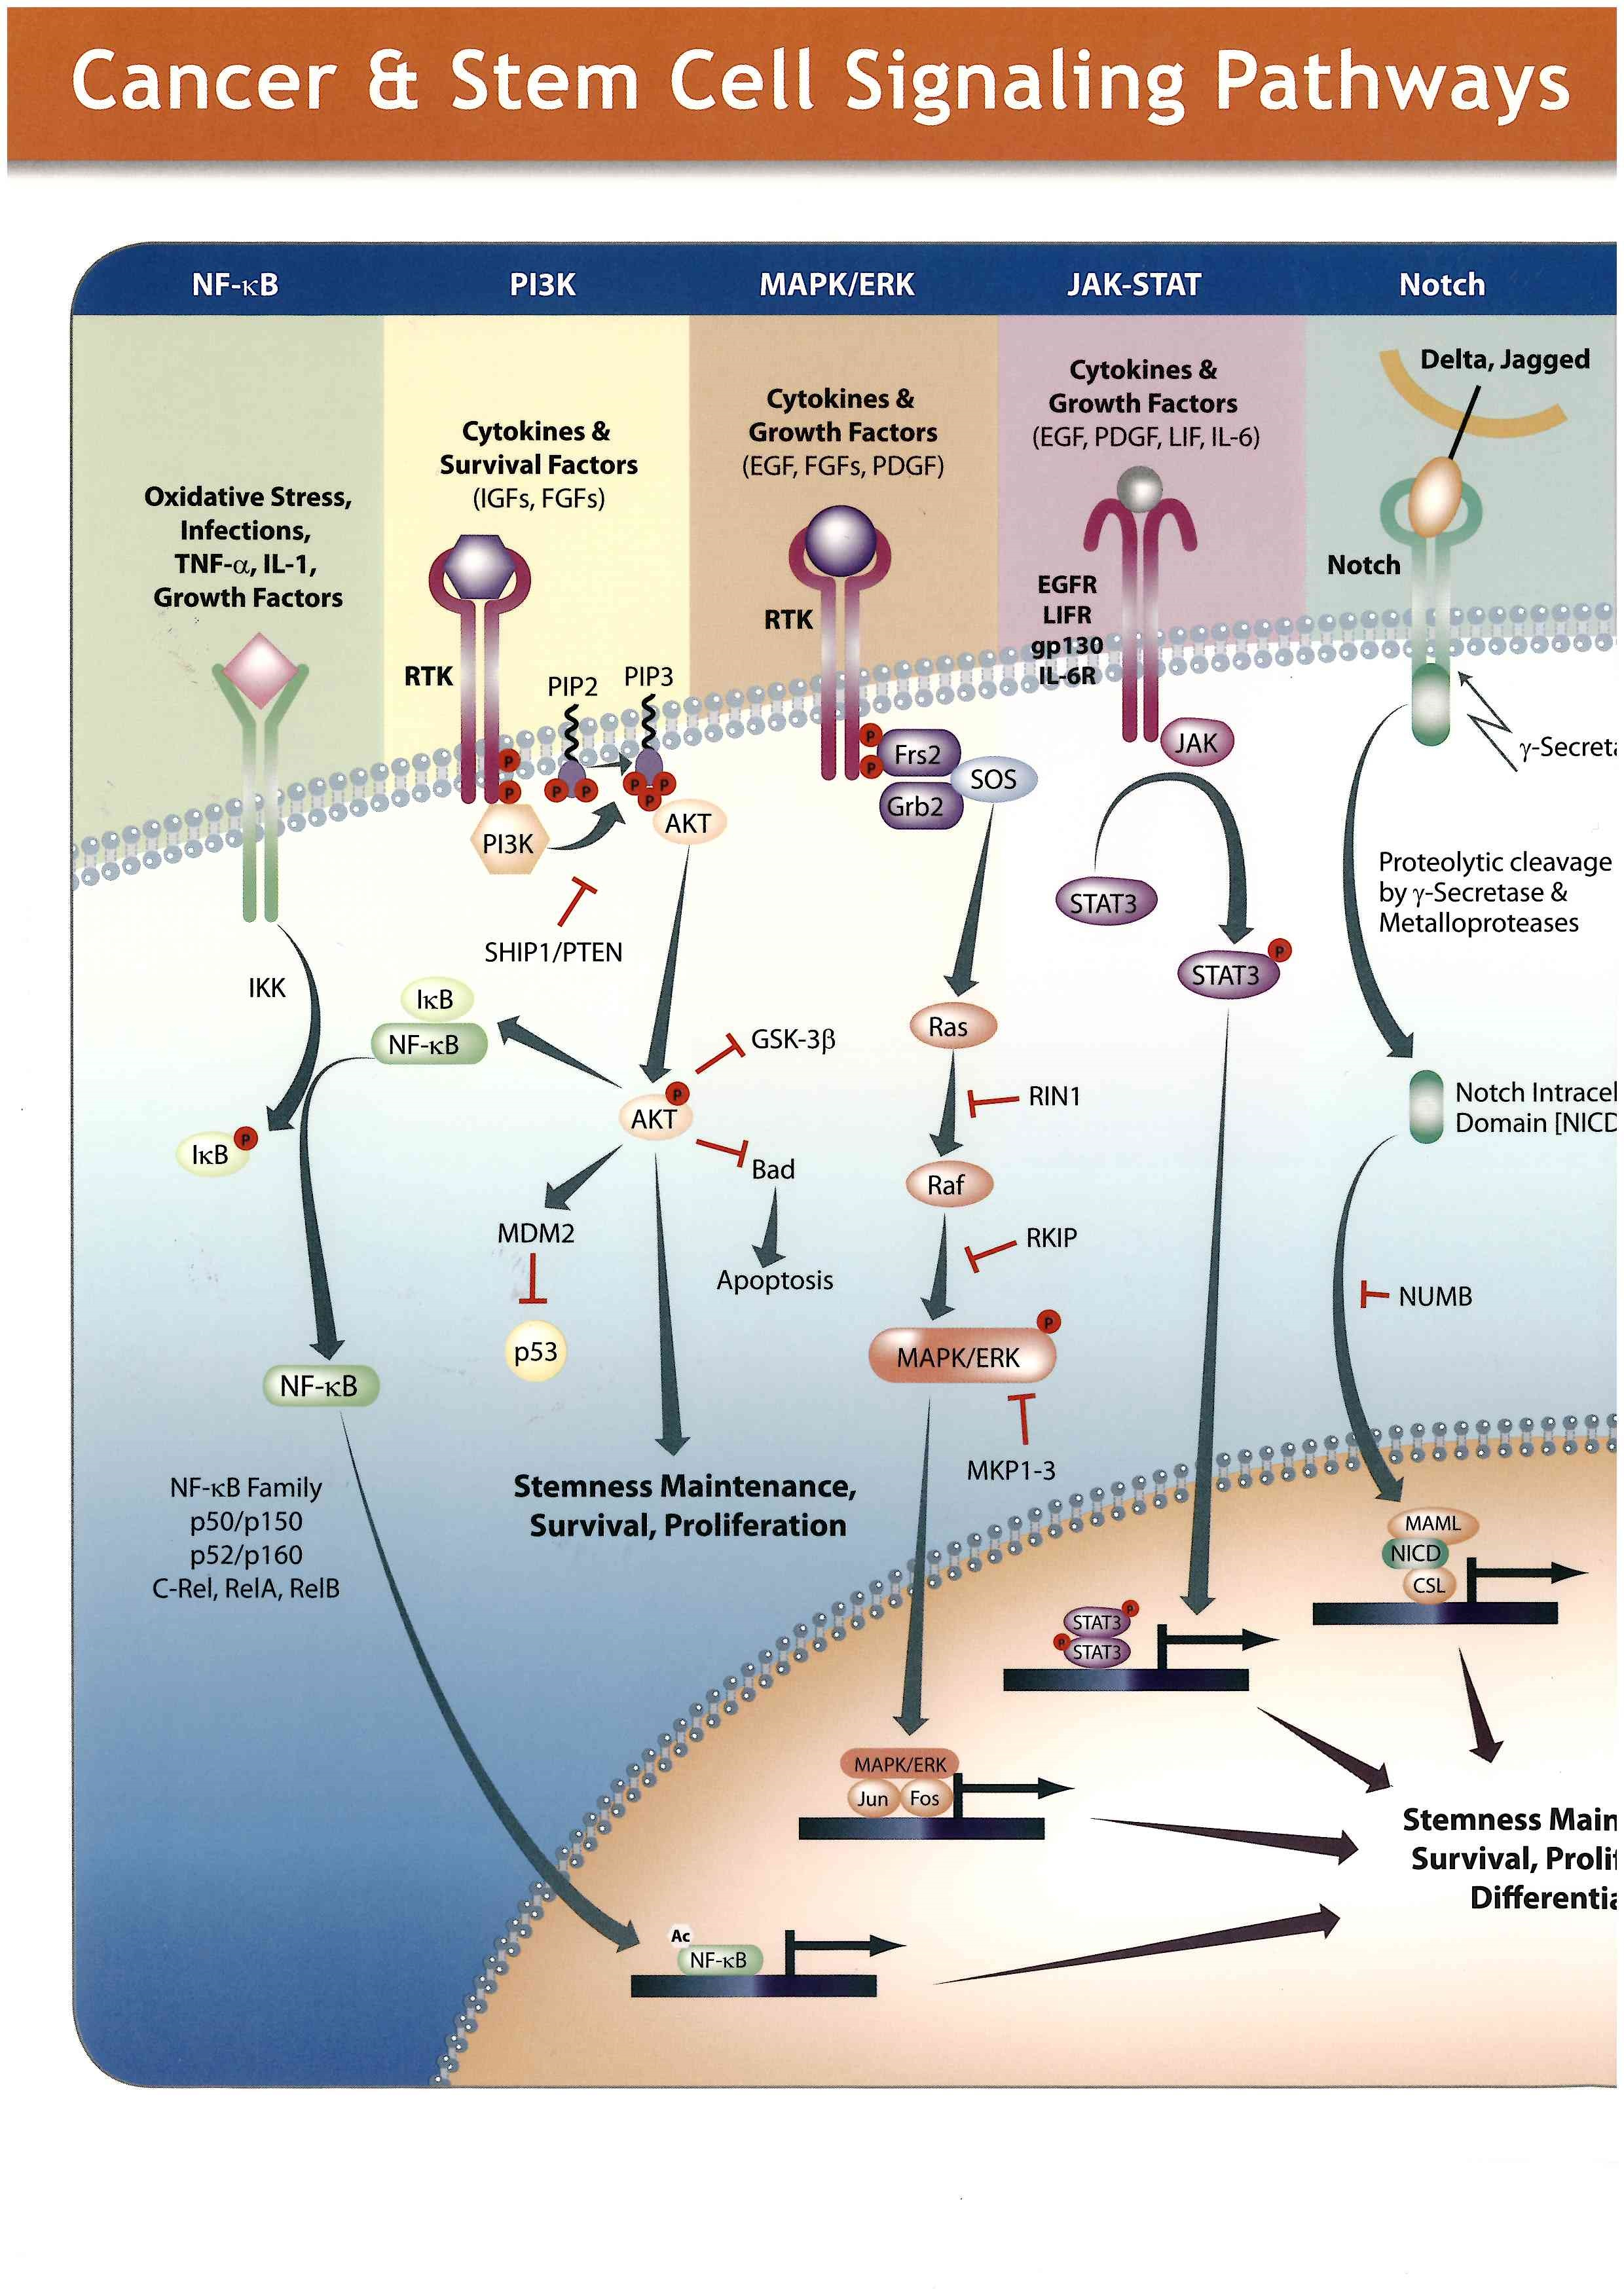 Cancer & Stem Cell Signaling Pathways(ポスター)( KOM : Adipogen Life Sciences/#6123)